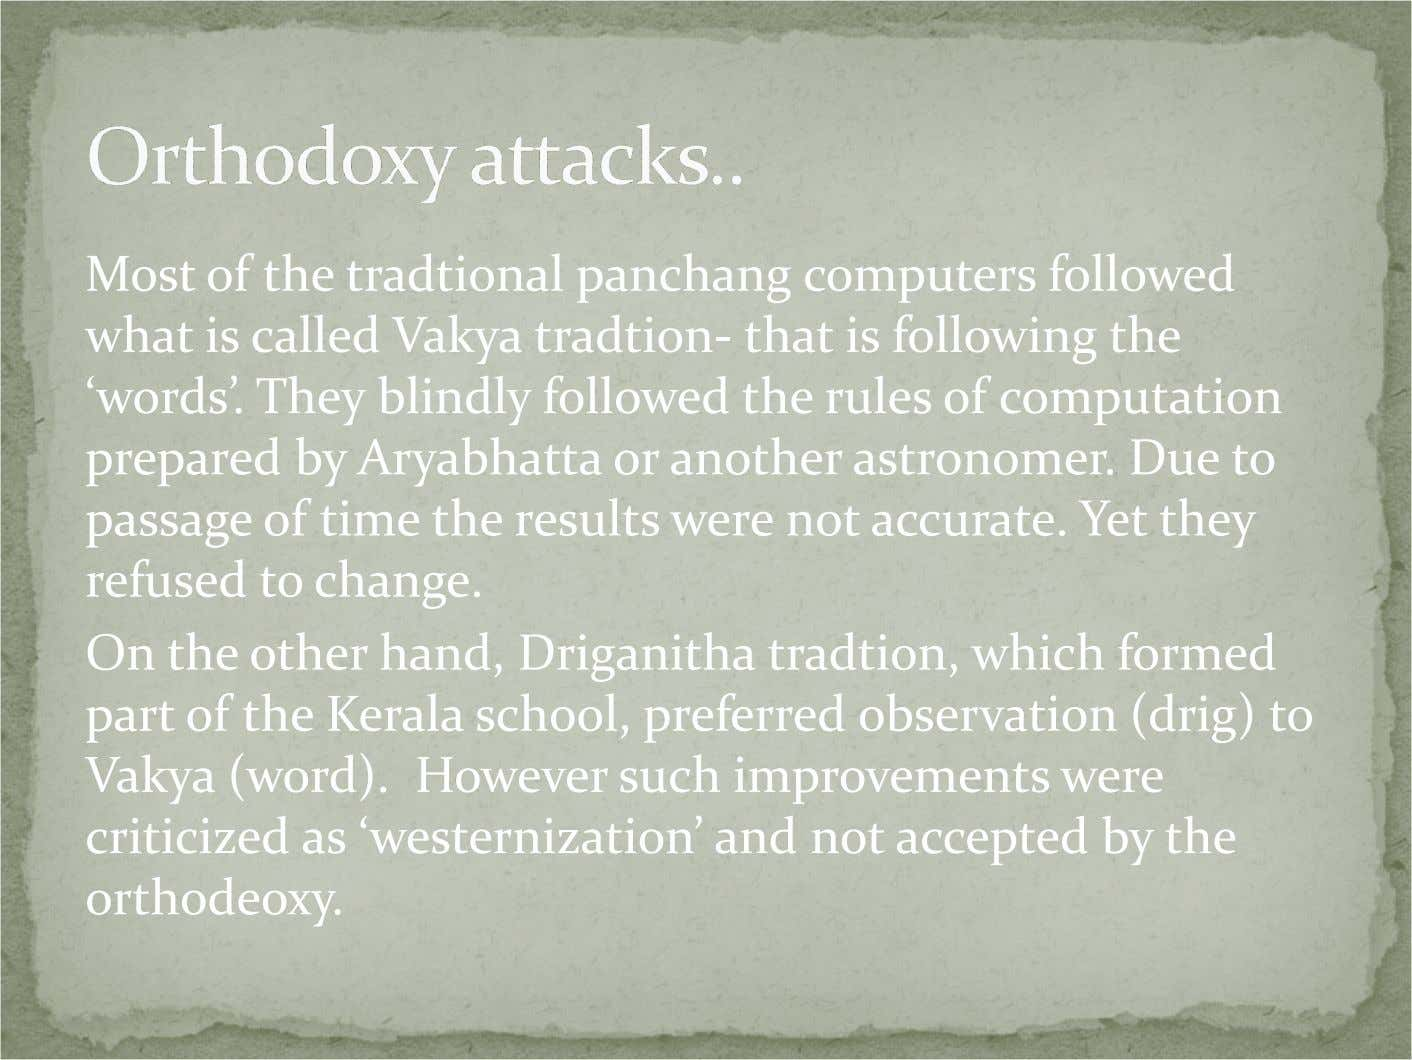 Most of the tradtional panchang computers followed what is called Vakya tradtion- that is following